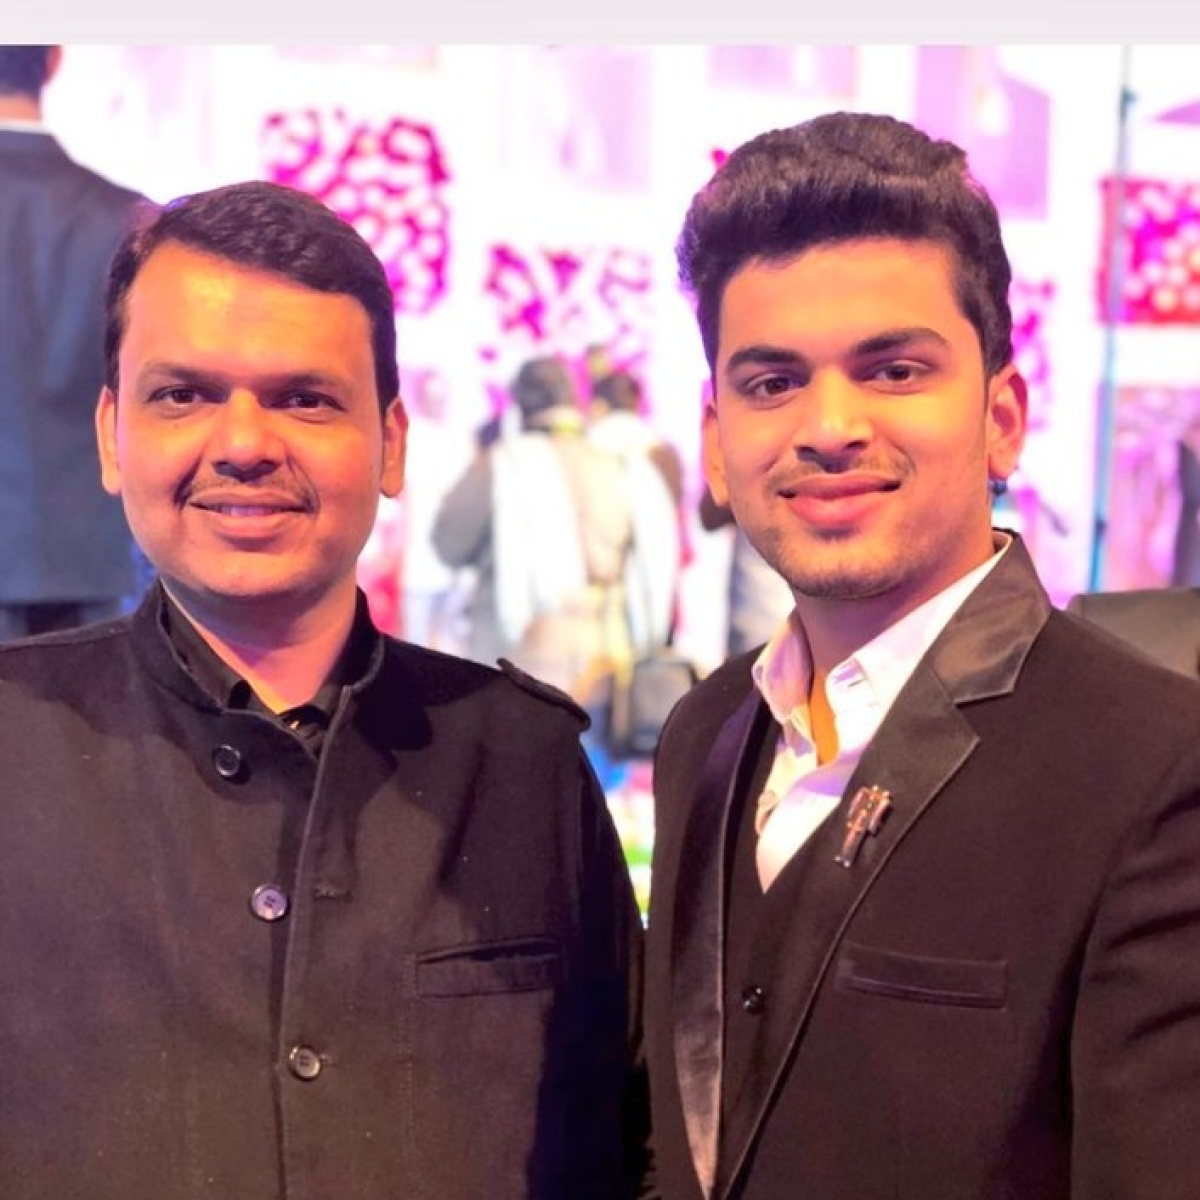 'Is he a frontline worker?': Devendra Fadnavis' nephew Tanmay trolled for bragging about vaccination